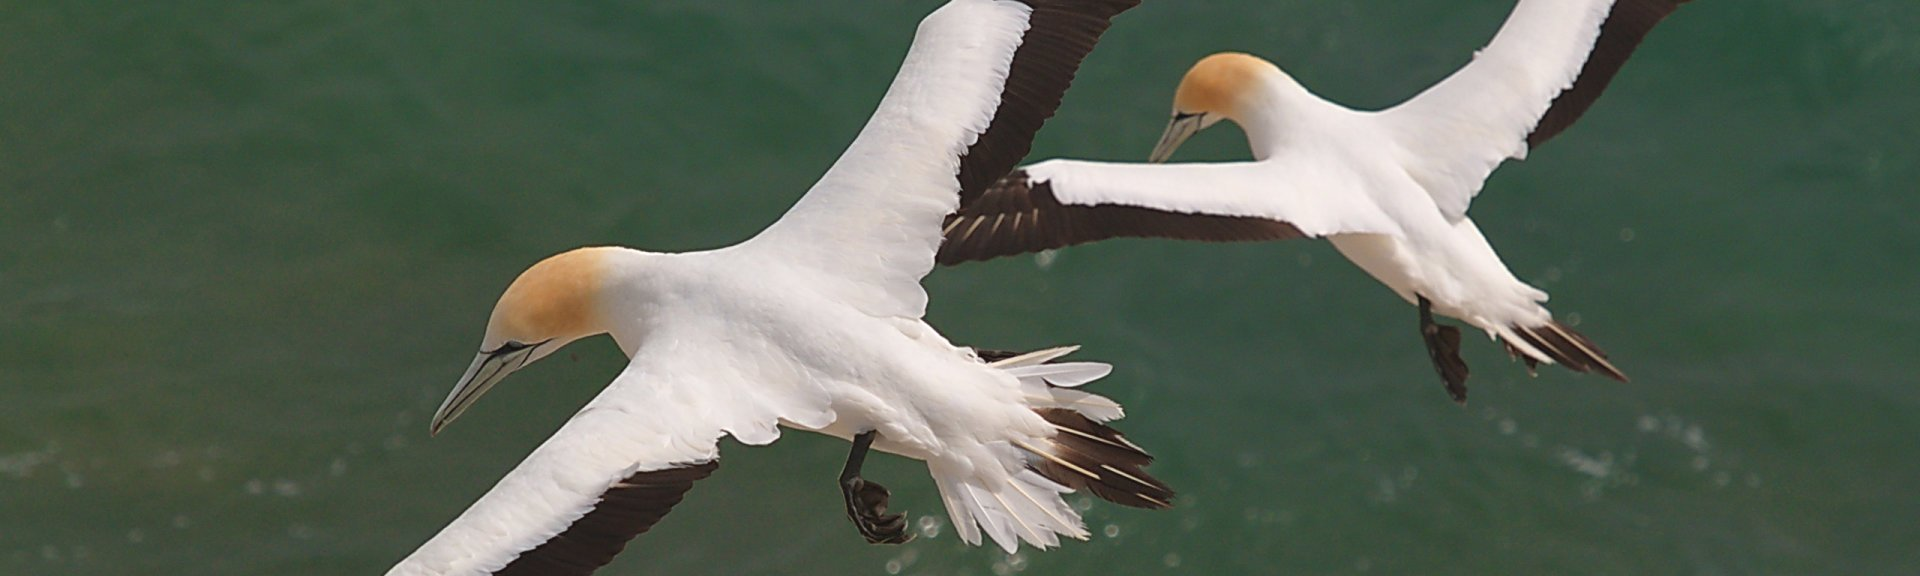 Australasian gannets in flight over the water. Photo by Alan Danks